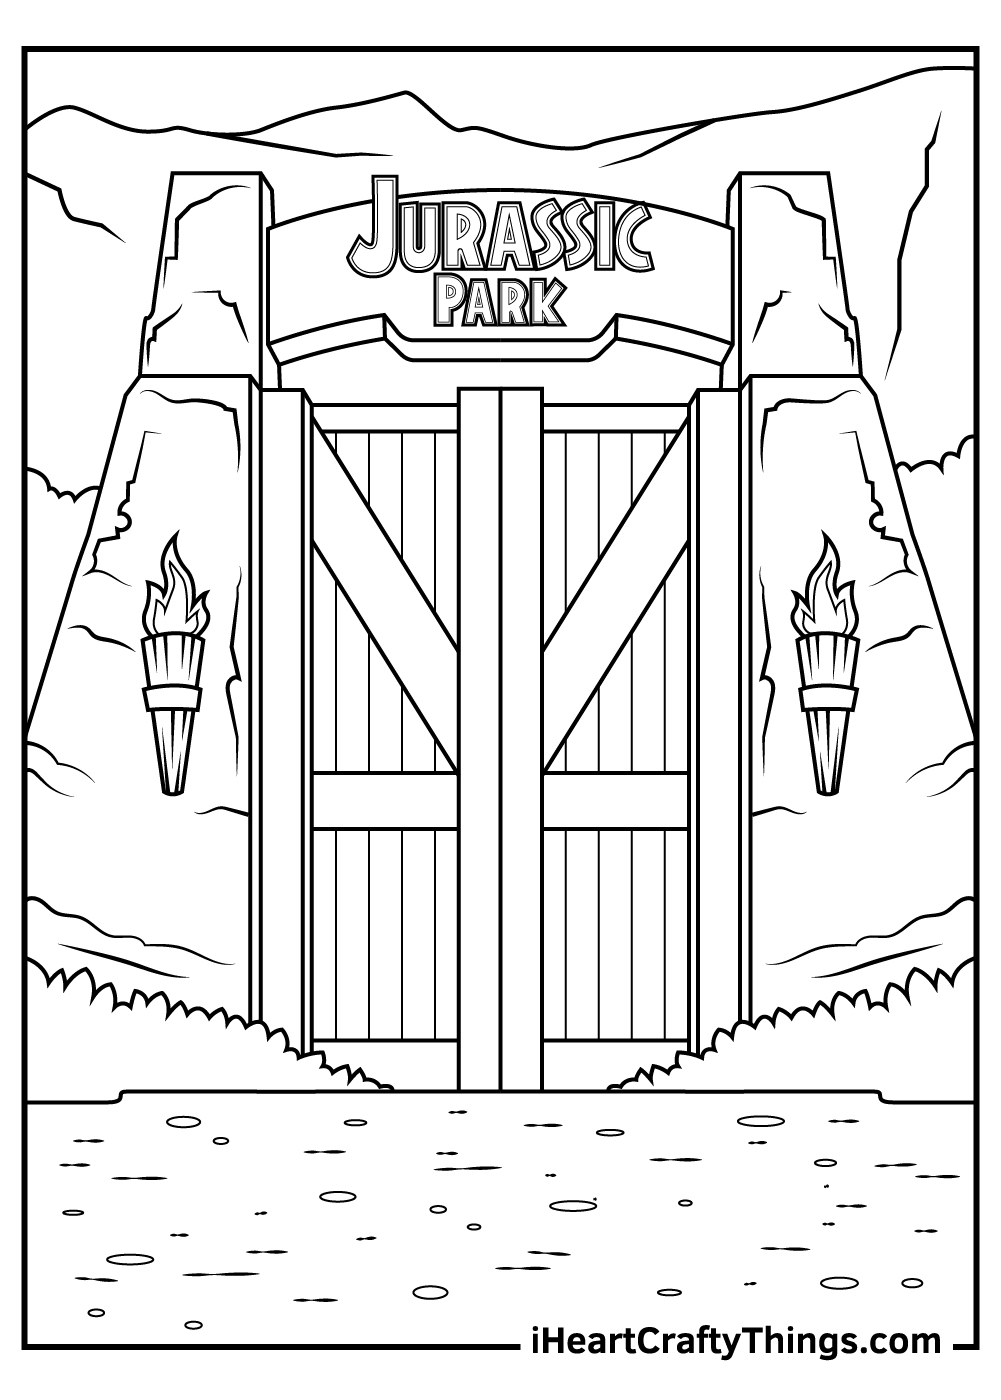 jurassic park coloring pages for kids